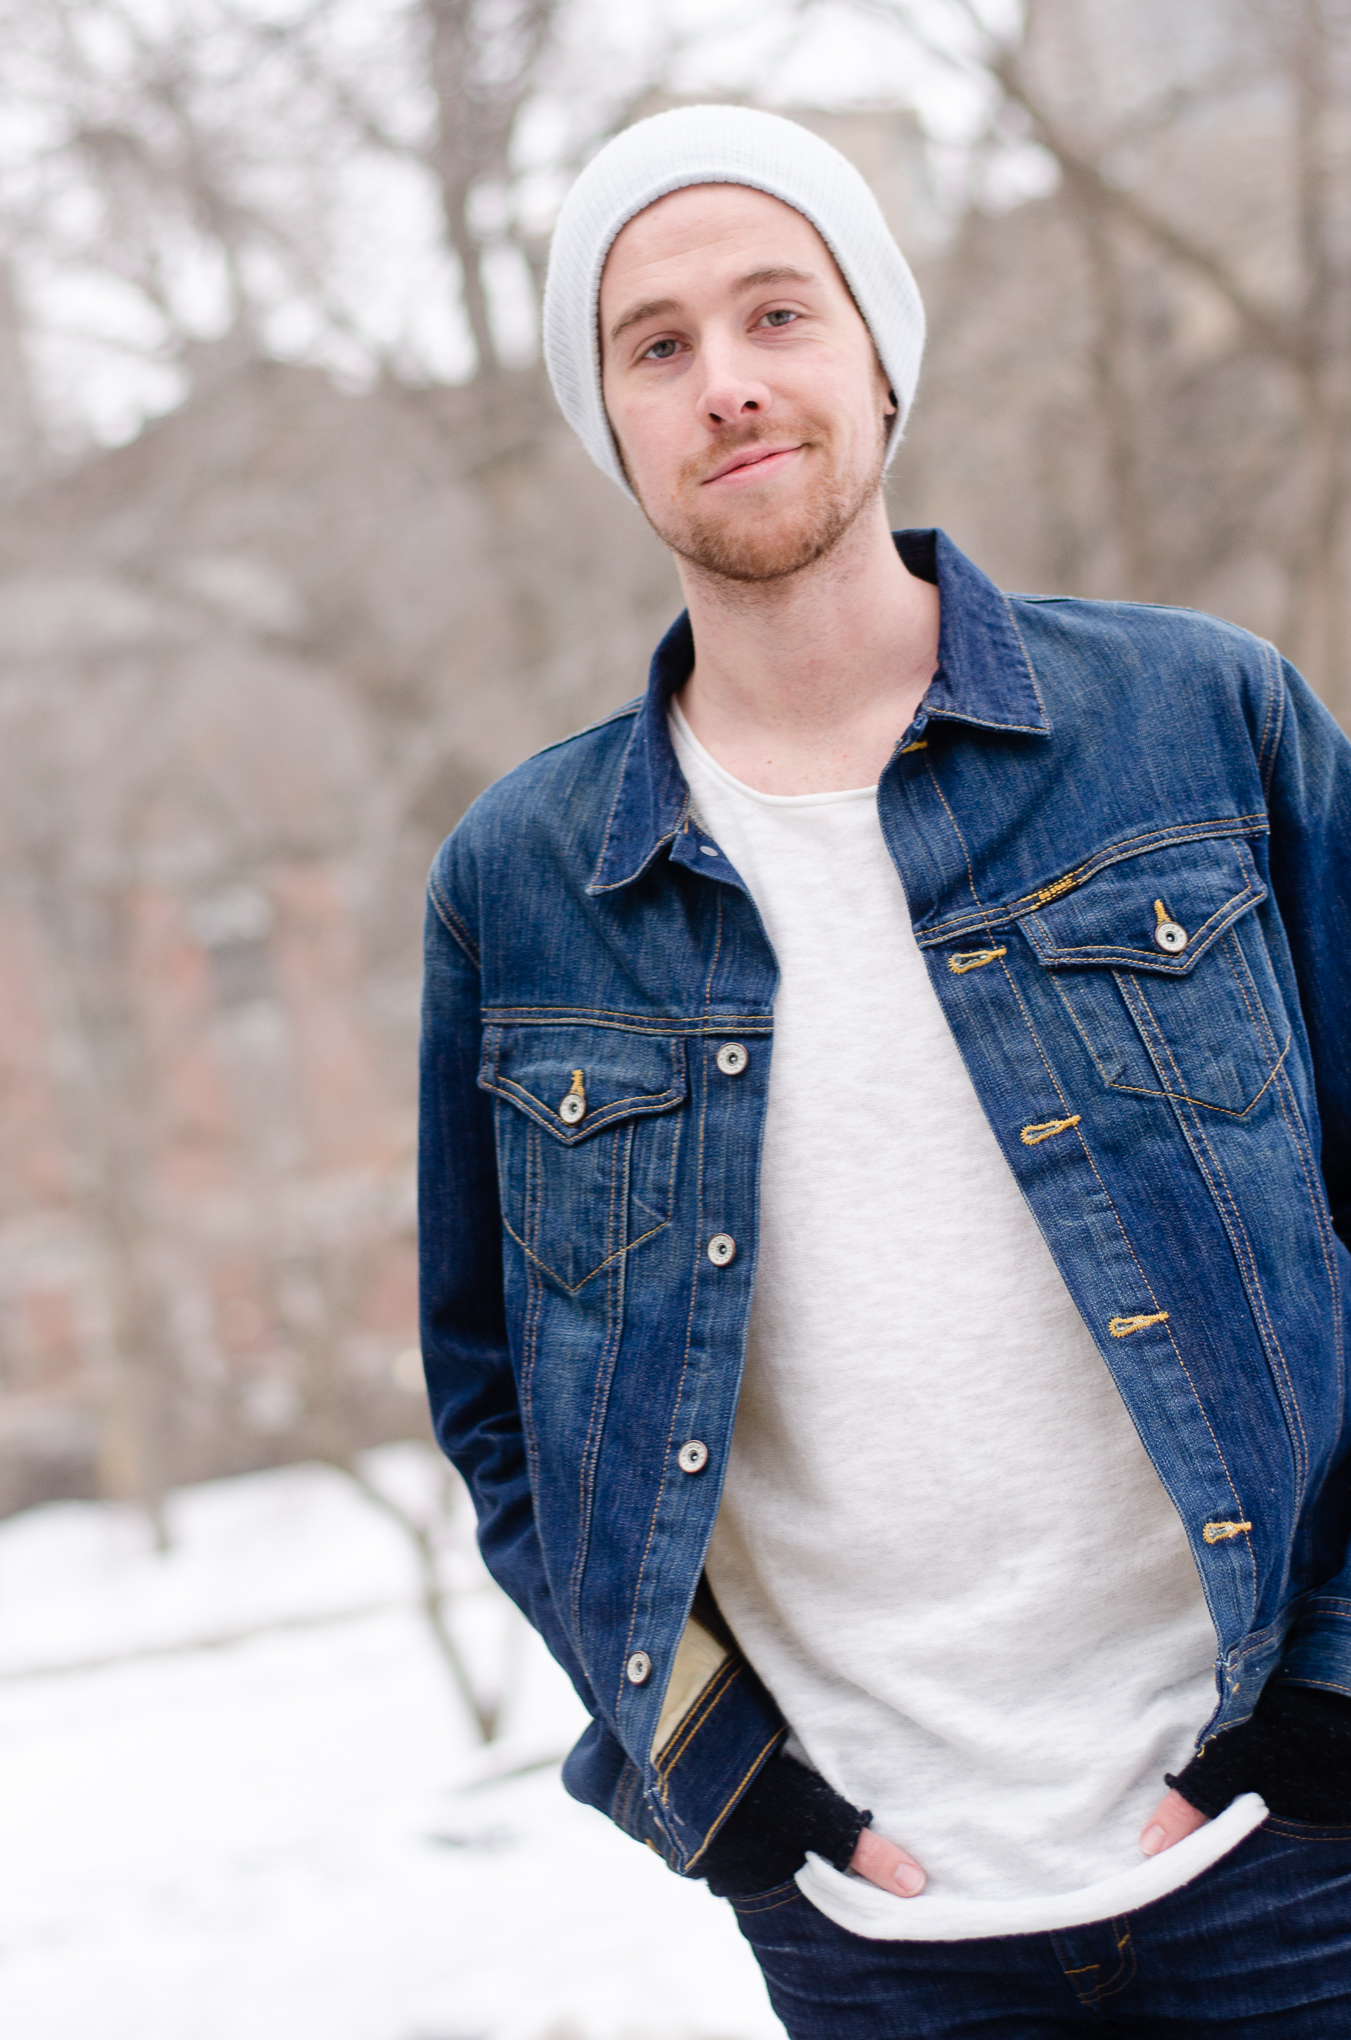 The Kentucky Gent, a men's fashion and lifestyle blogger, explores Central Park in a Big Star Denim Jacket and DSTLD Jeans.